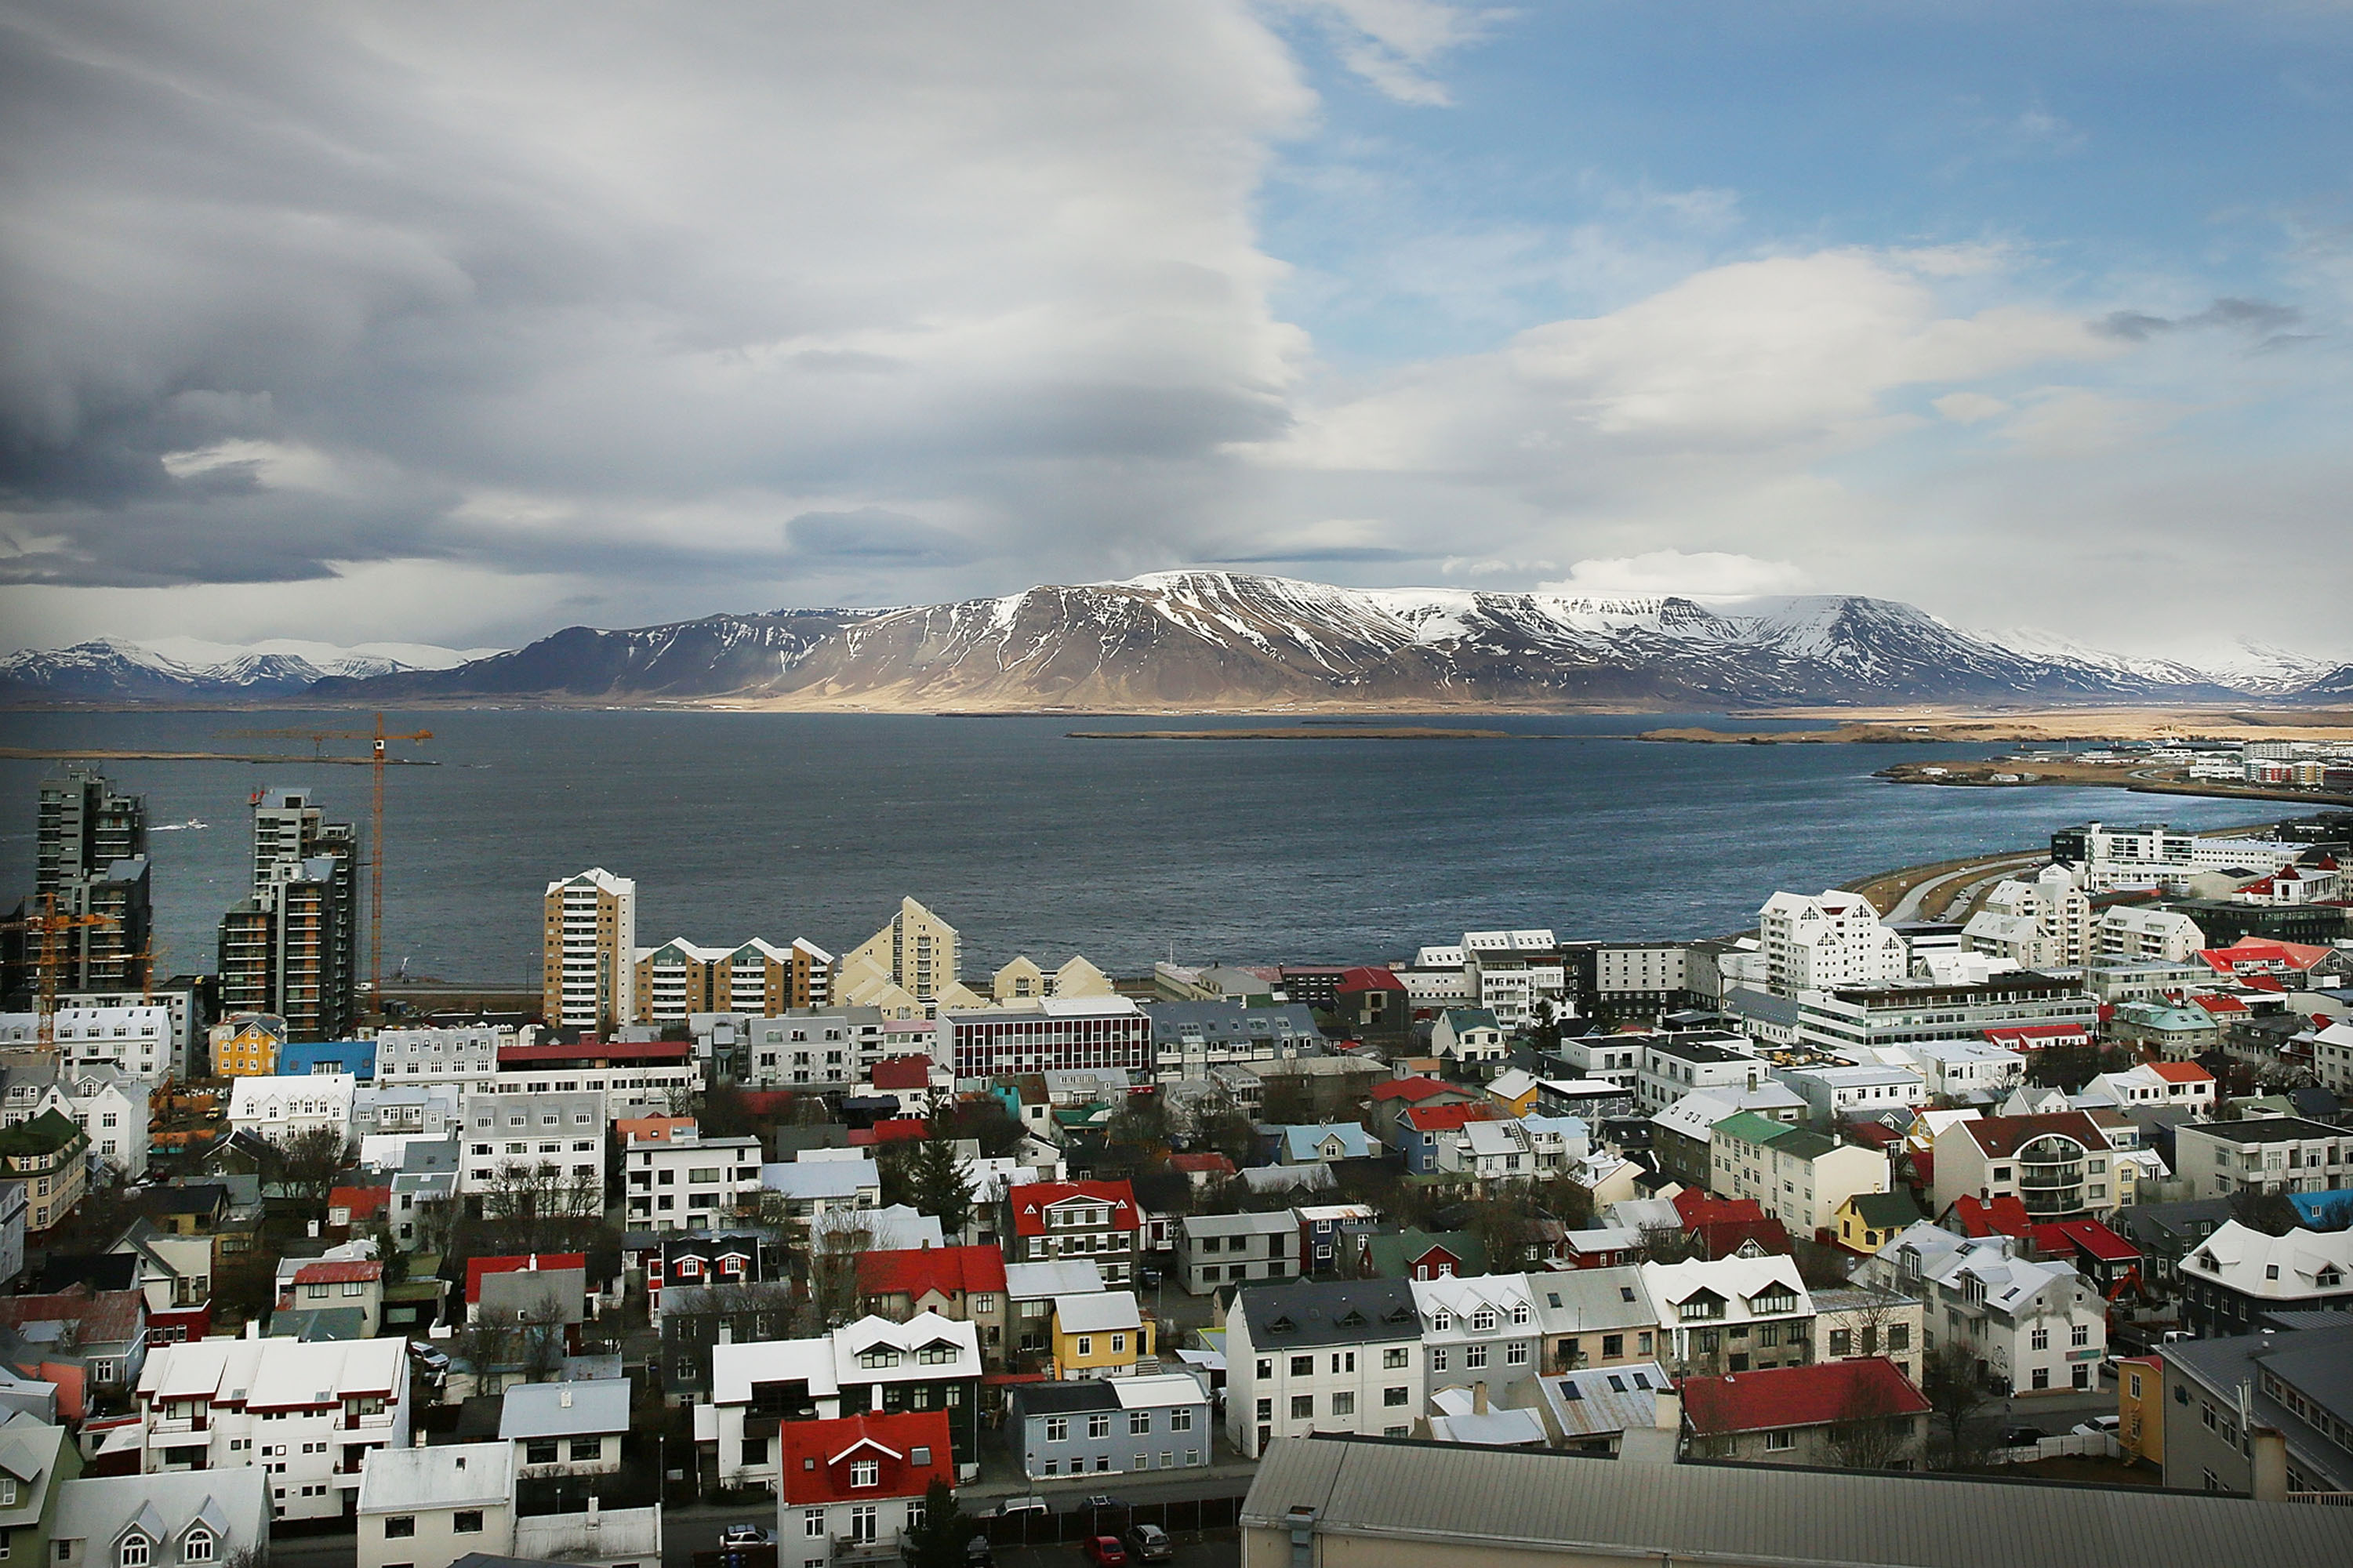 Iceland Apartments Reykjavik Is Swamped By Empty Luxury Flats